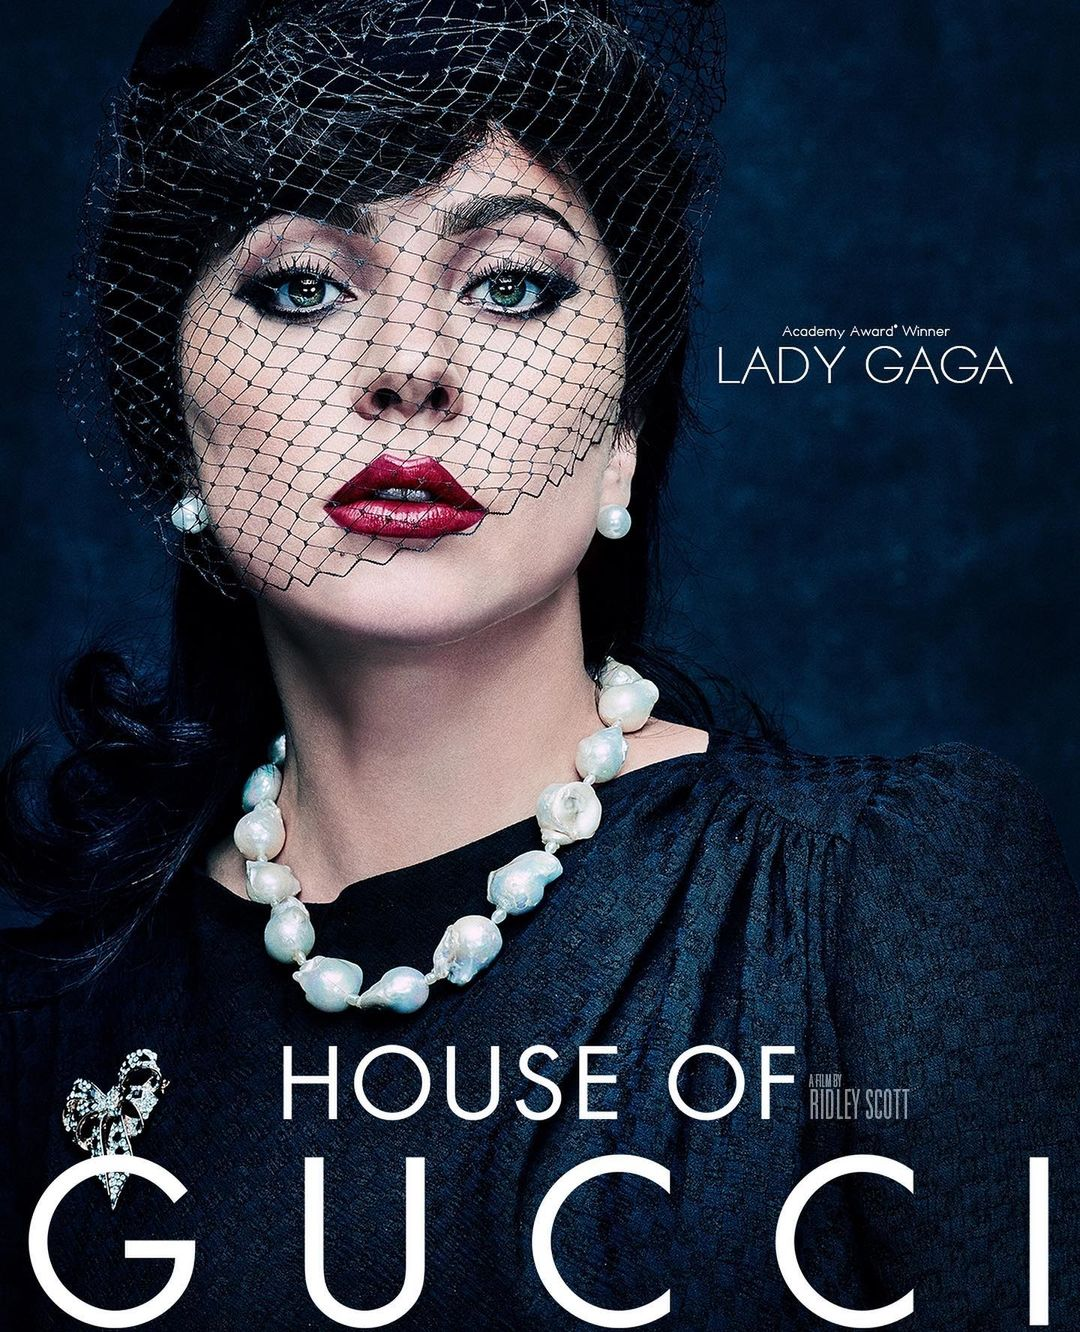 Lady gaga in House of Gucci - neomag.